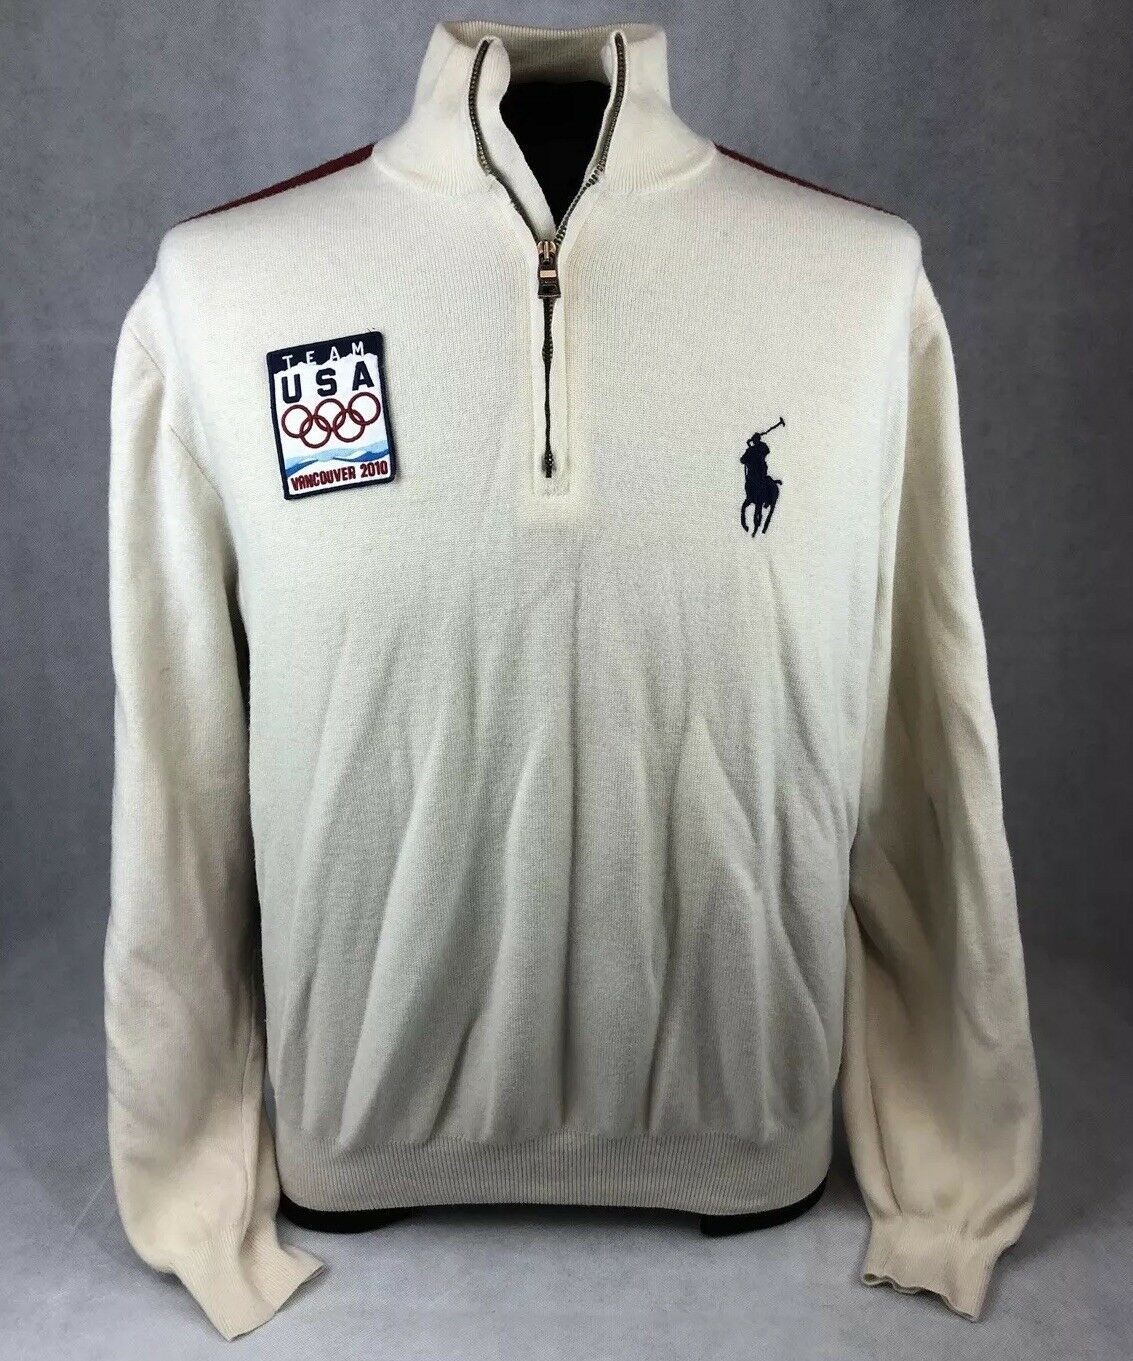 Polo Ralph Lauren Big Pony Team USA Vancouver 2010 Olympics Wool 1 4 Zip Sweater